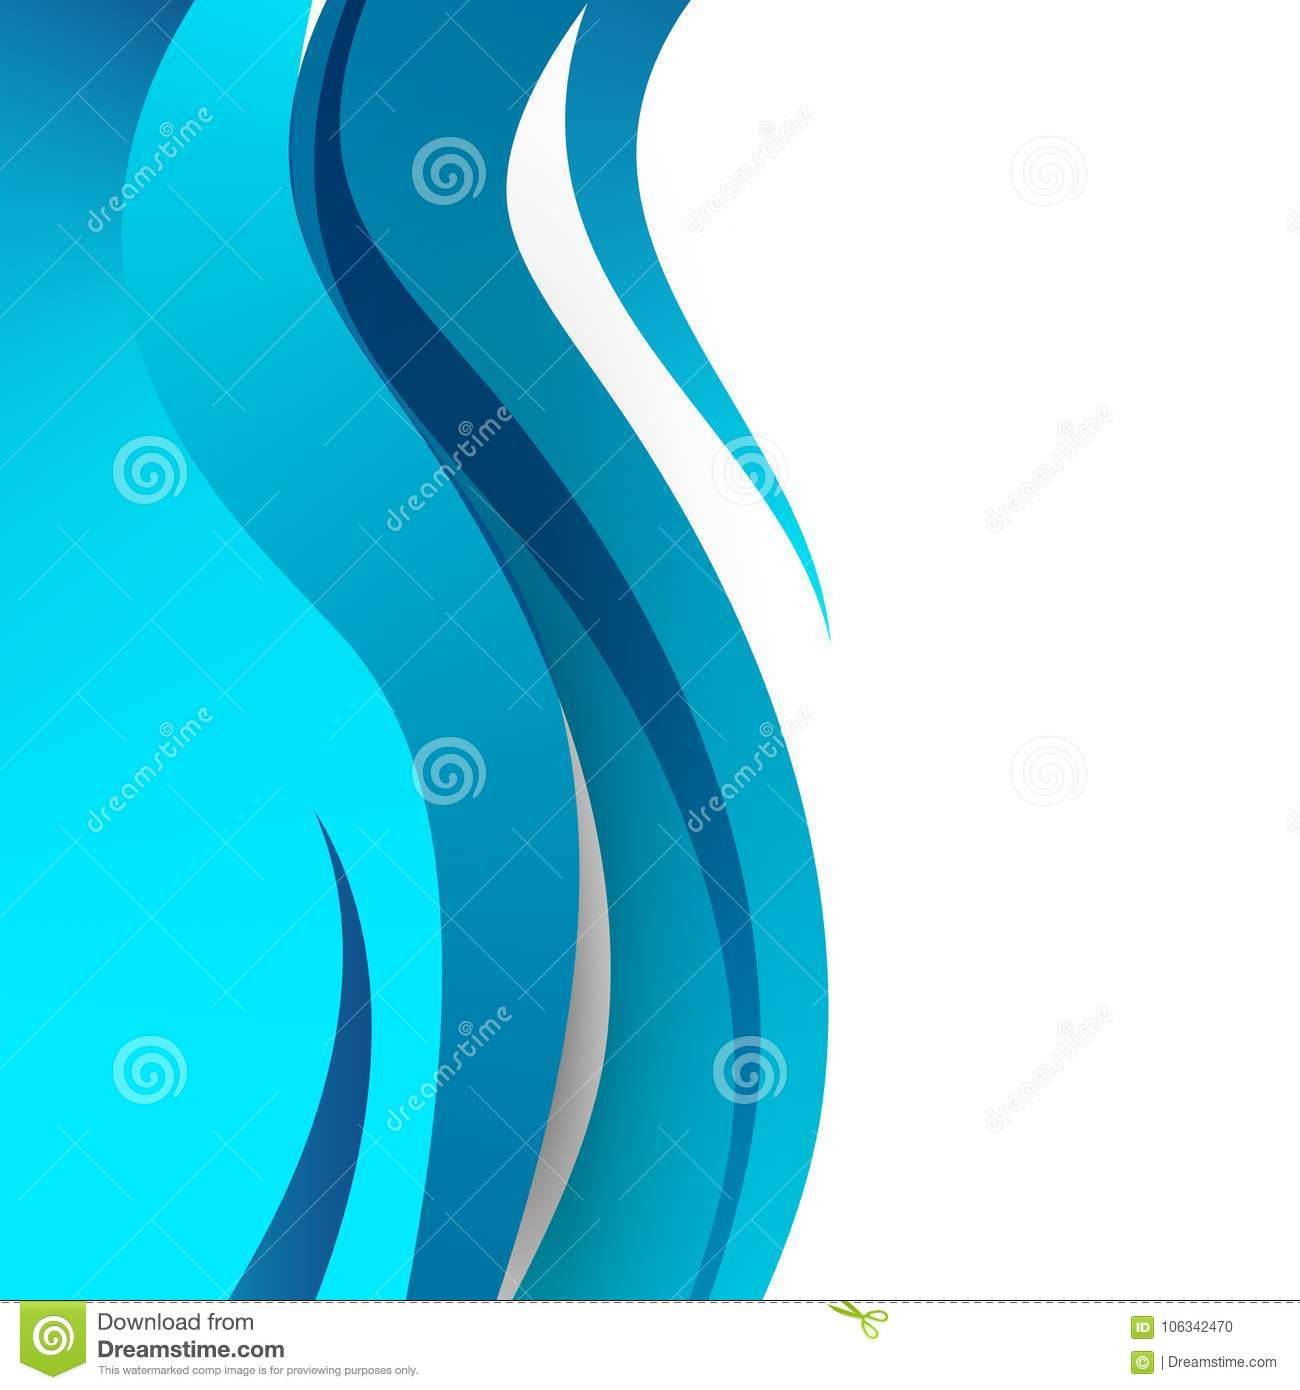 Abstract Bright Soft Design Background With Blue Wavy Curved Lines In Dynamic Smooth Style